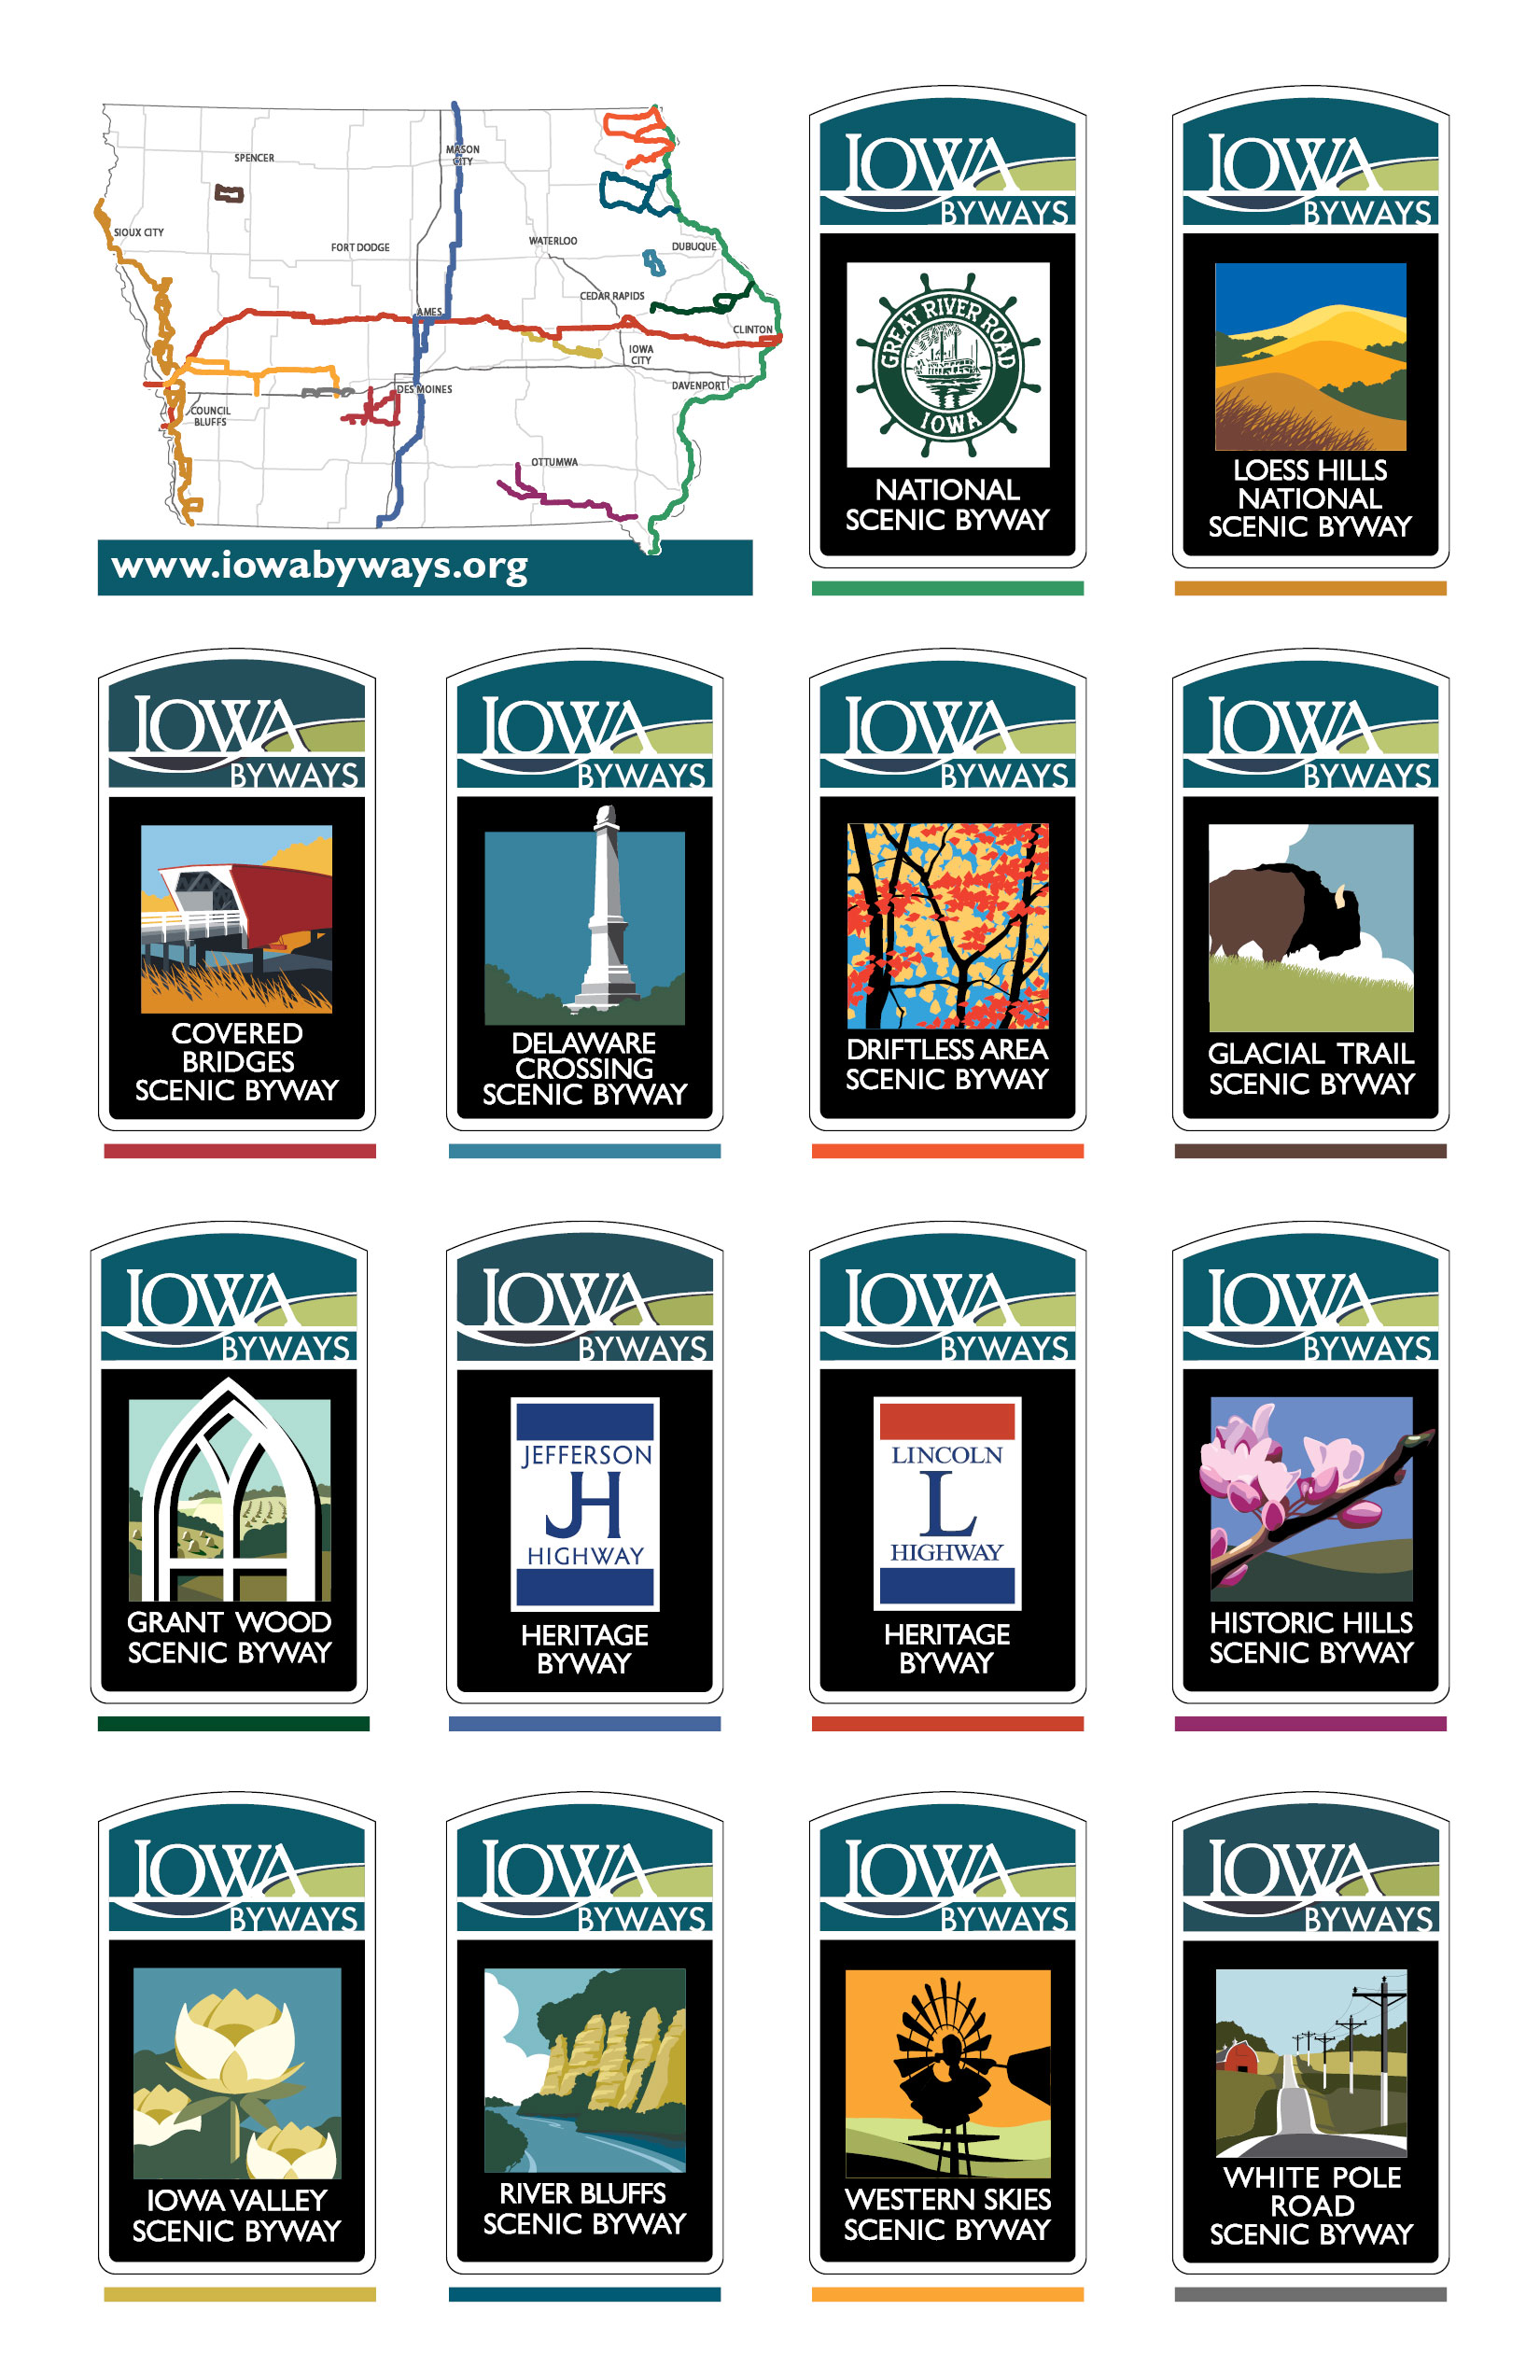 Iowa Byways posters